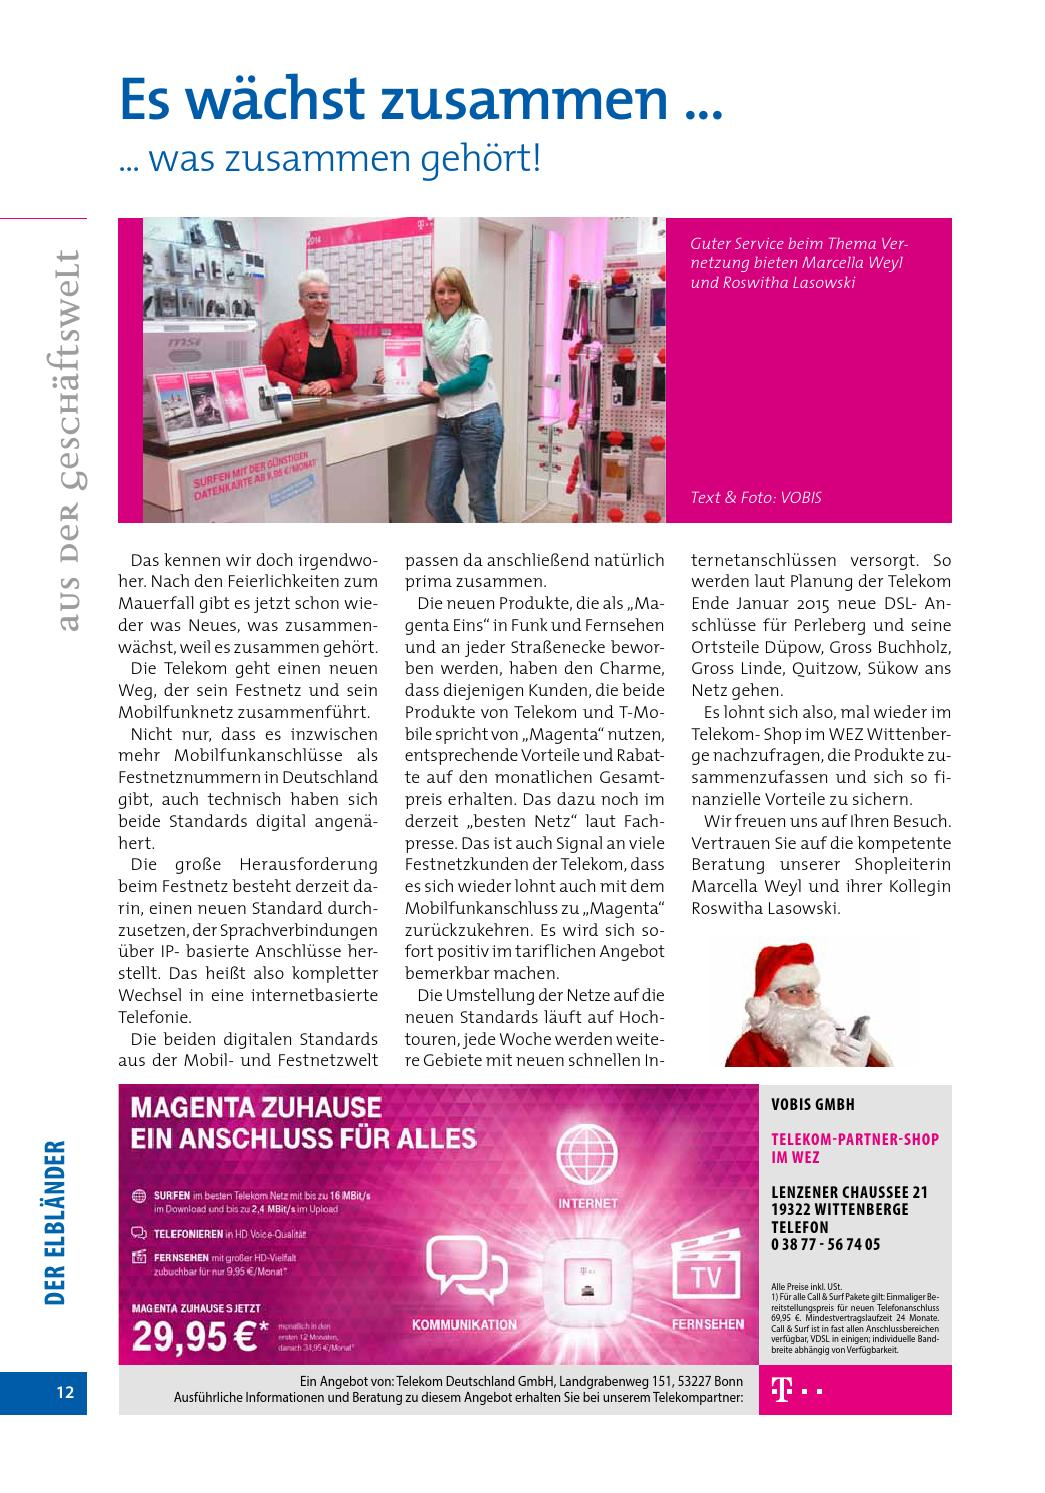 Dezember 2014 By Media At Vice Gmbh Issuu